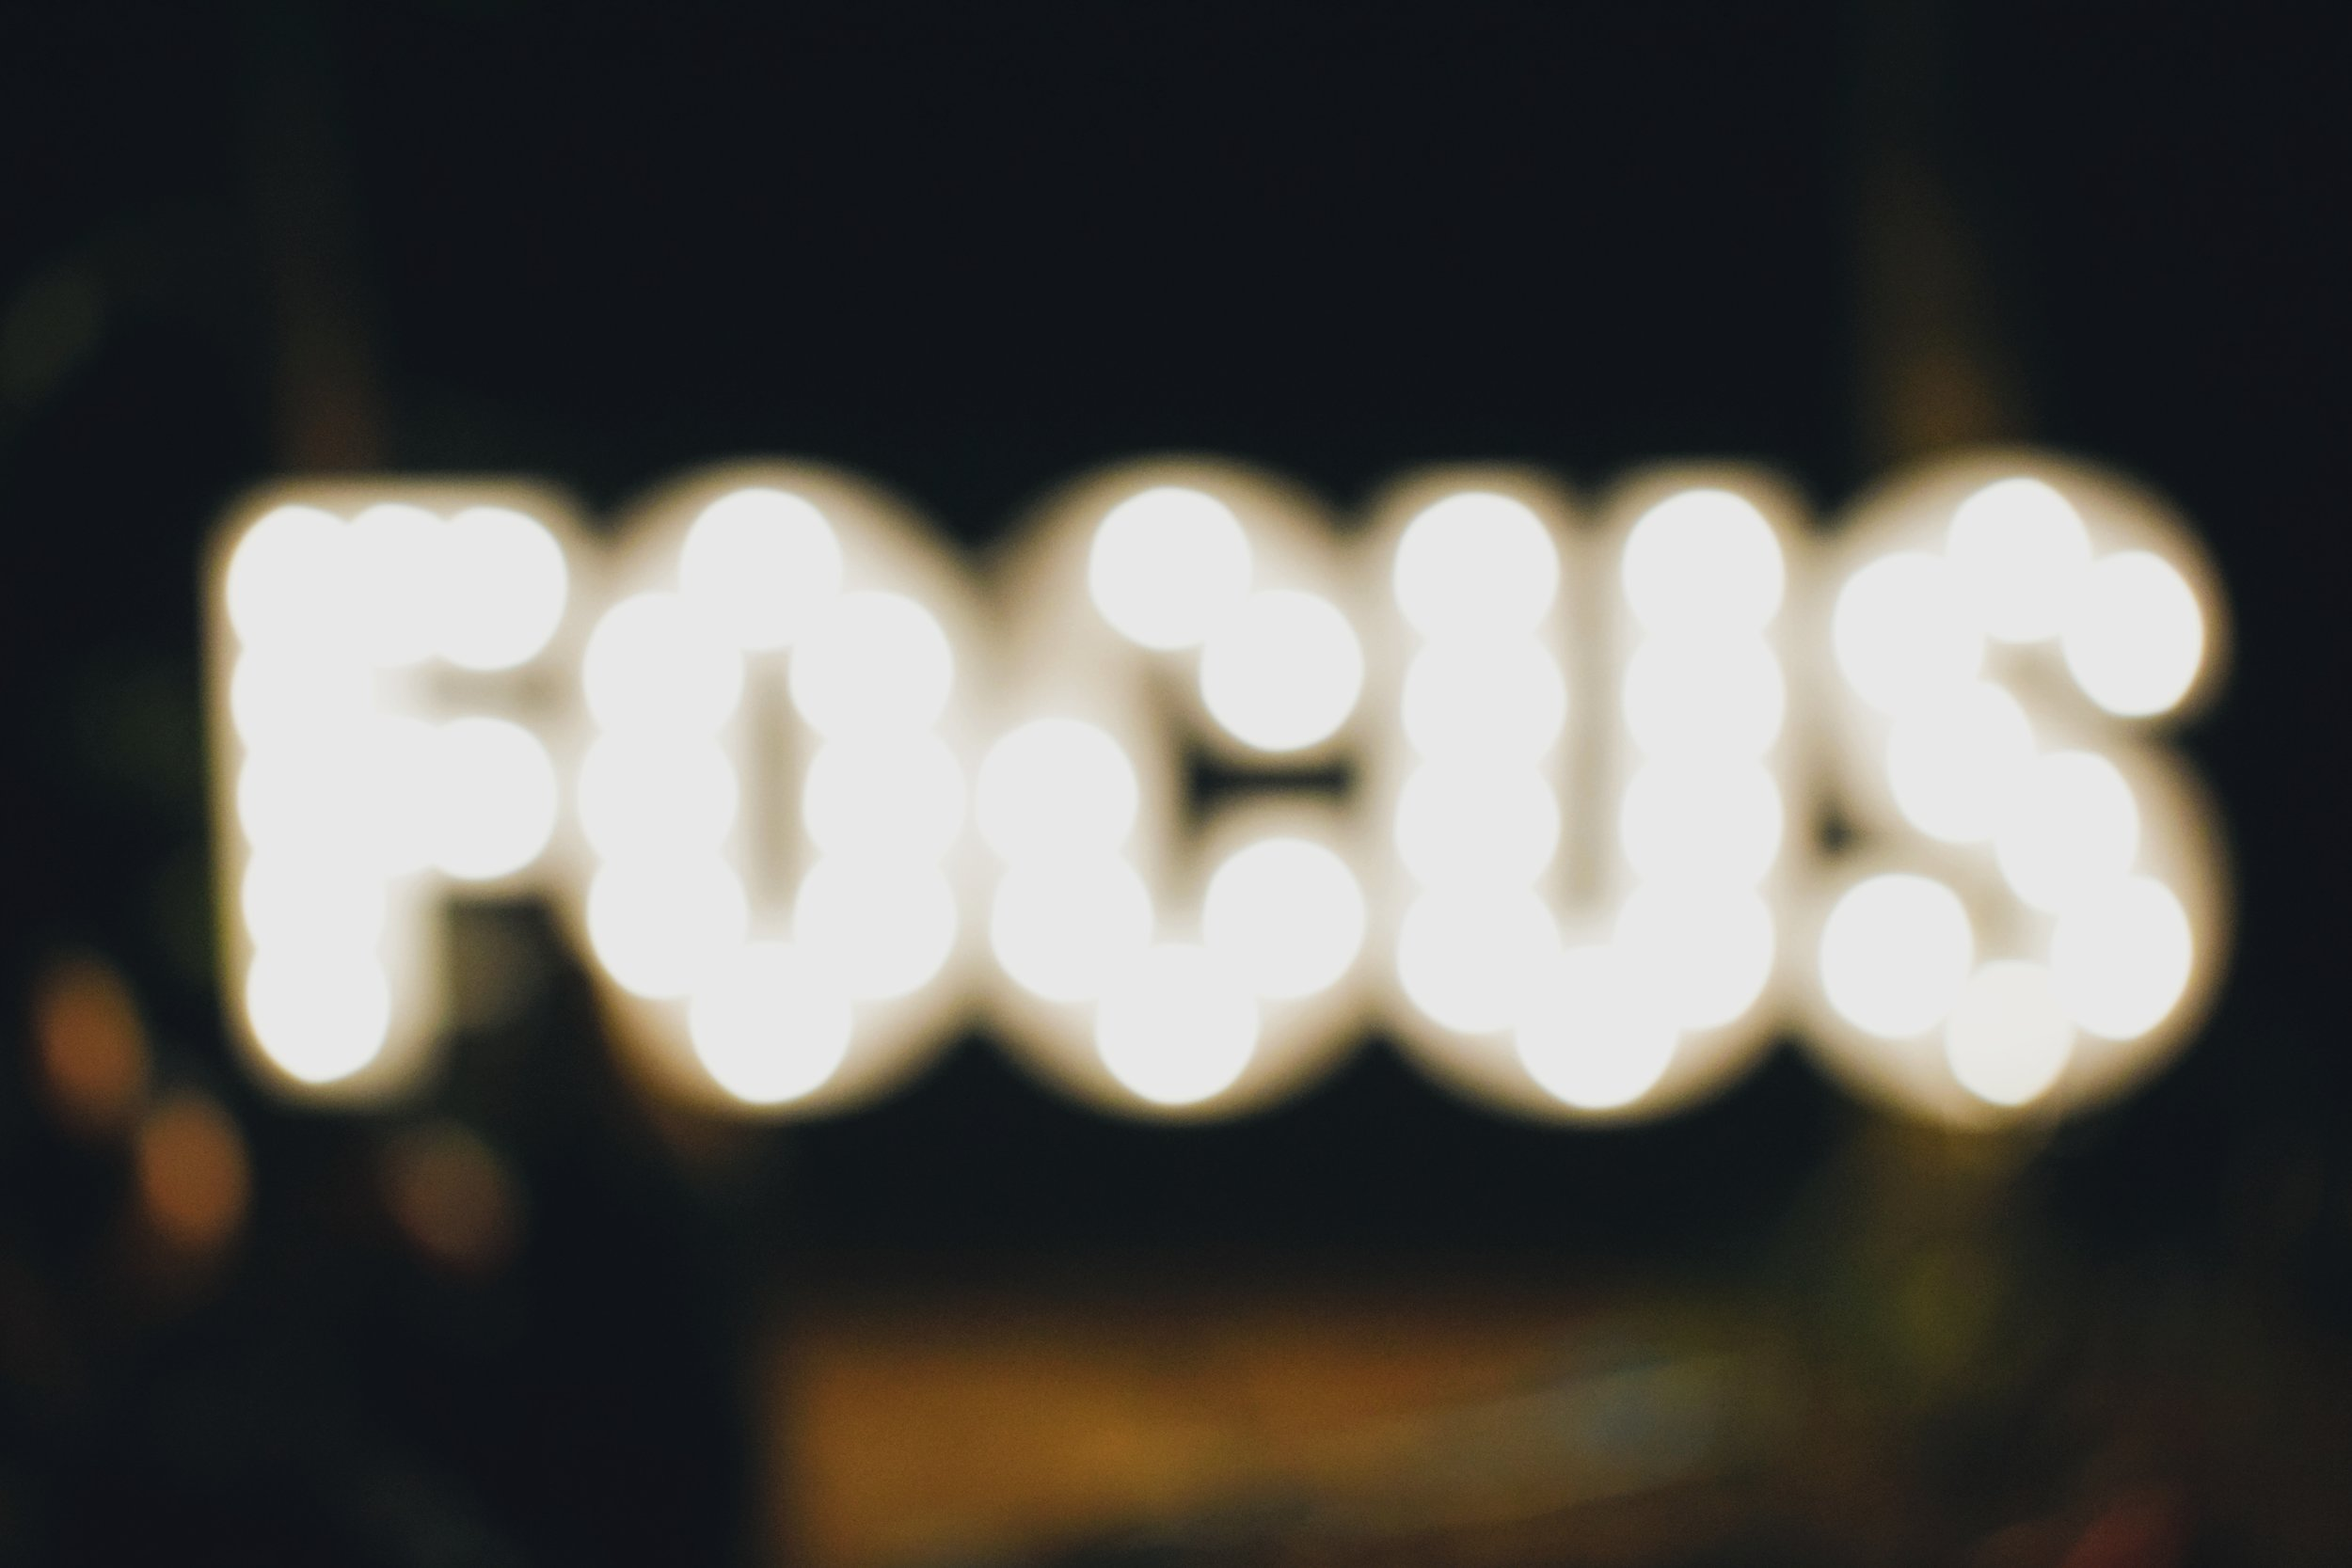 Focus on being coherent and consistent